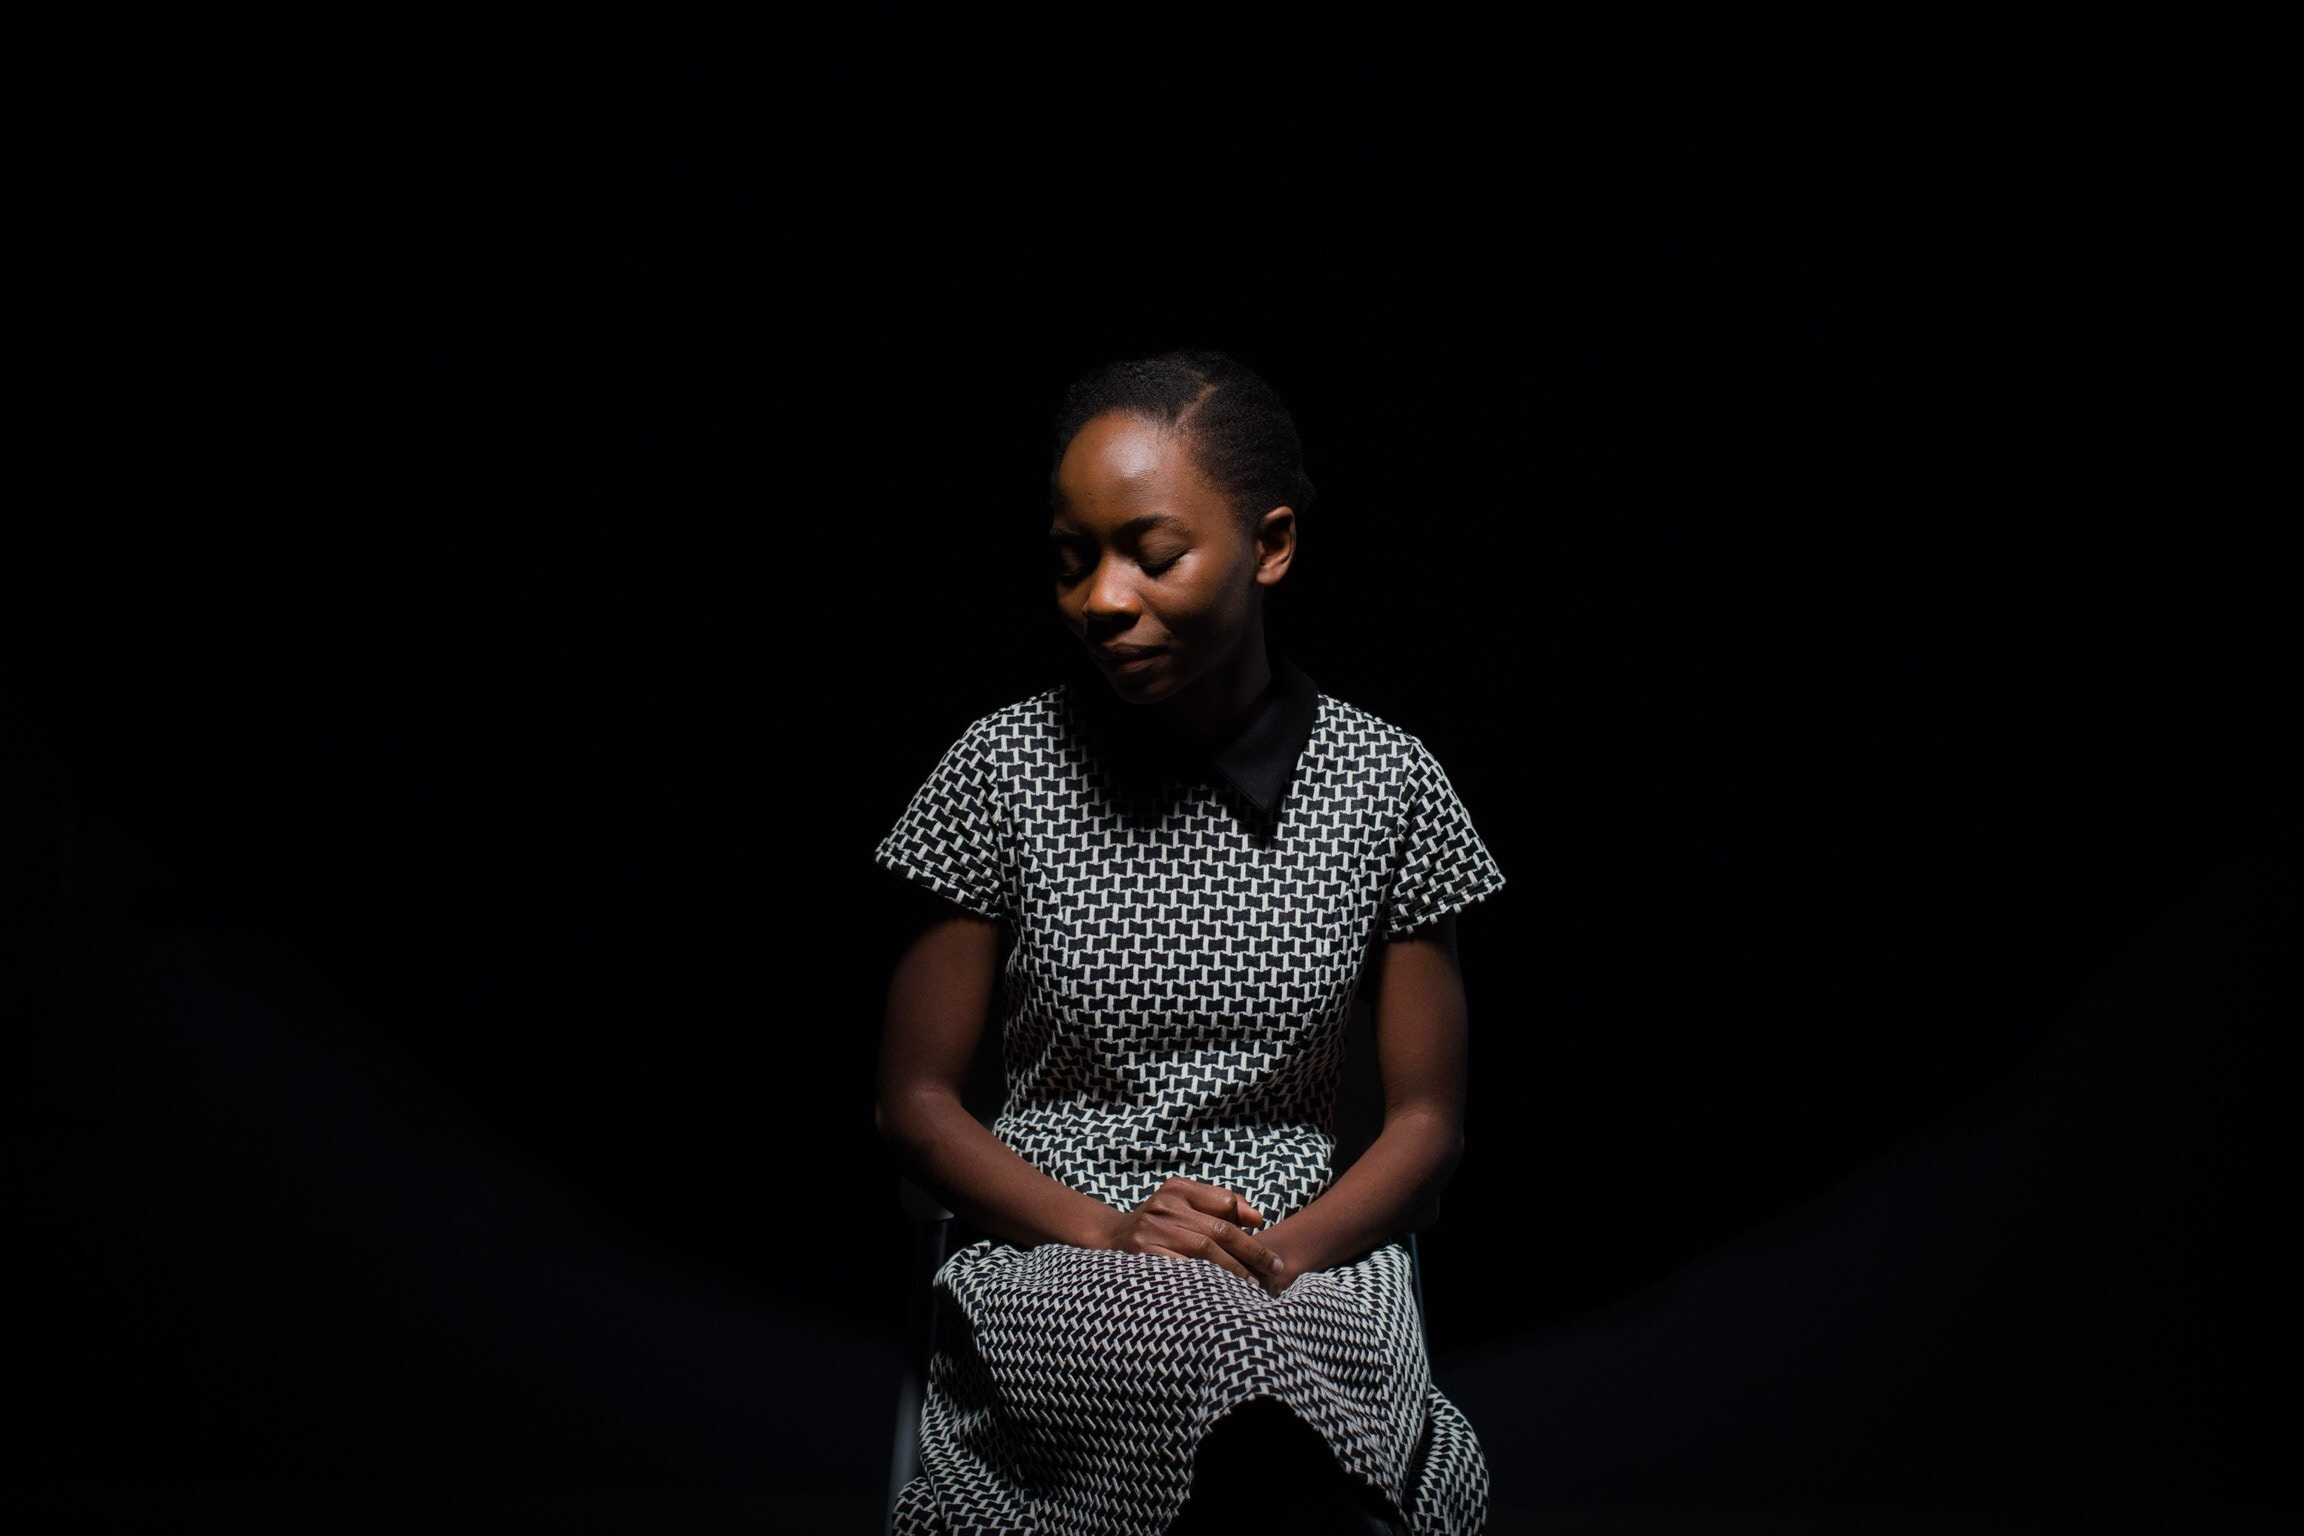 Black Woman thinking about child in Anorexia Recovery